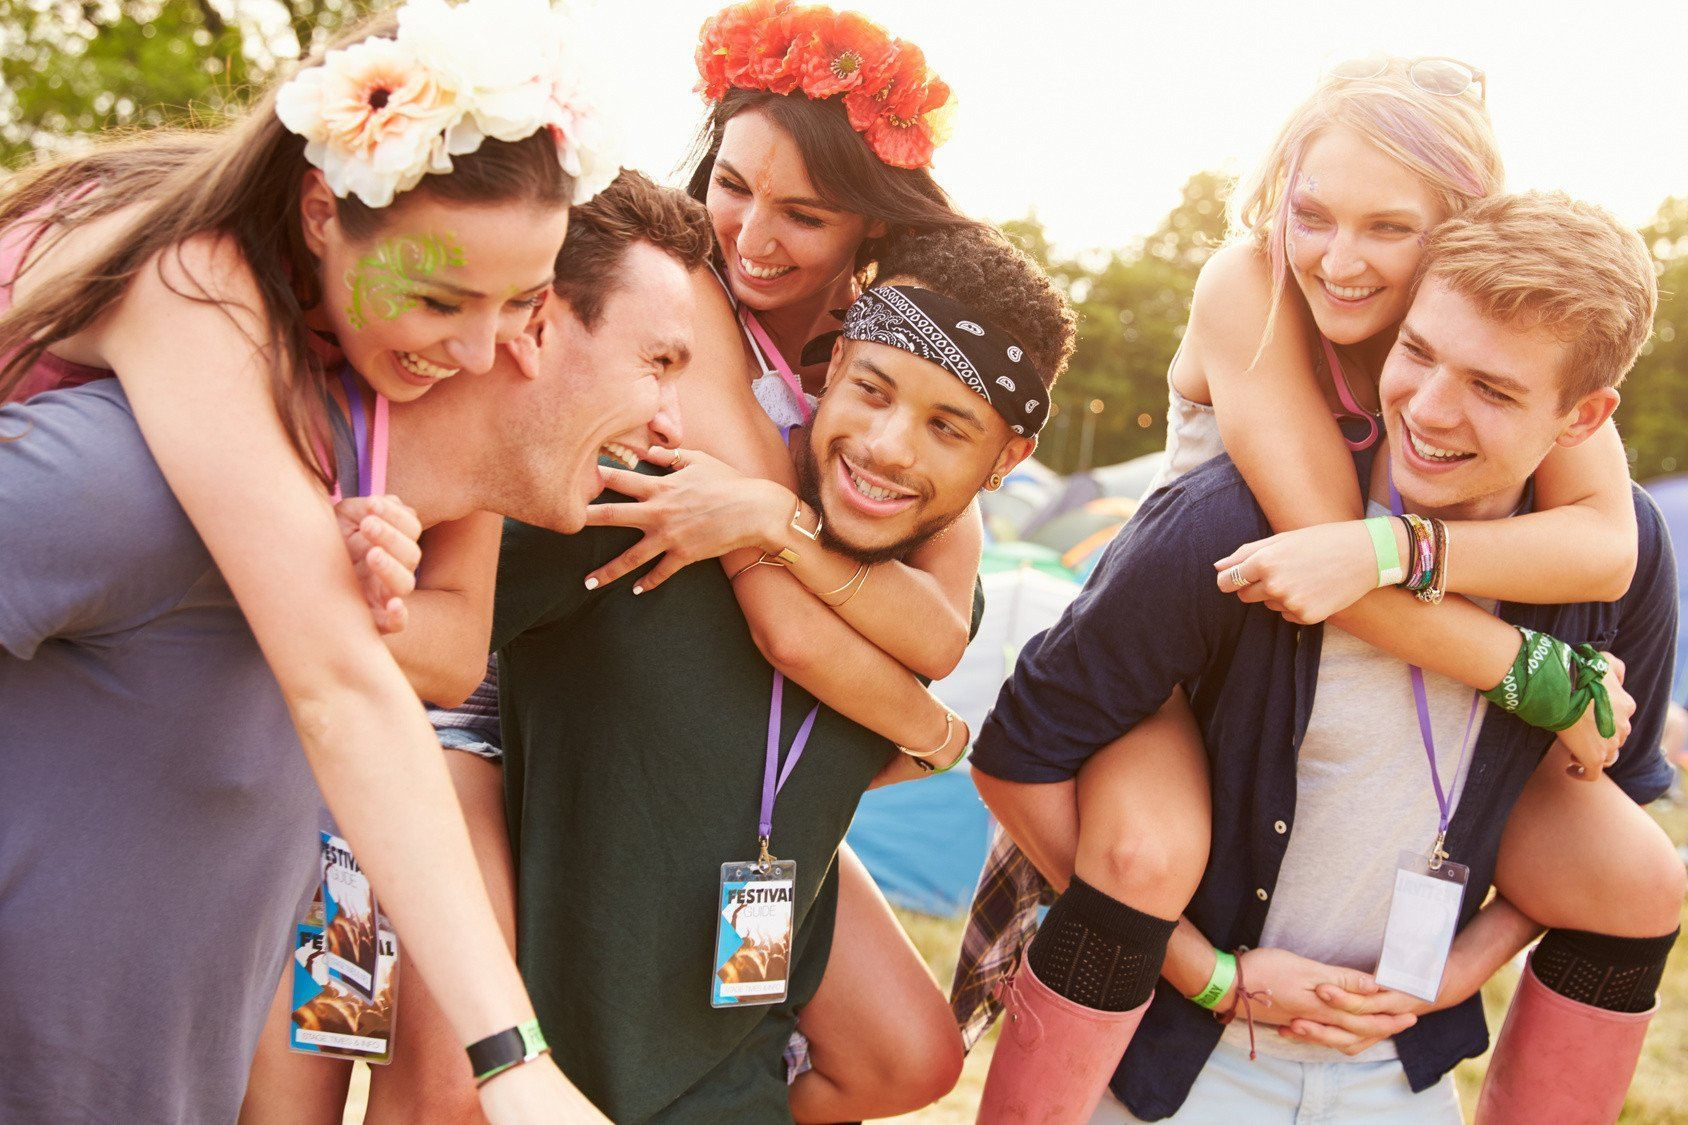 The Best Ways to Prepare for the Music Festival